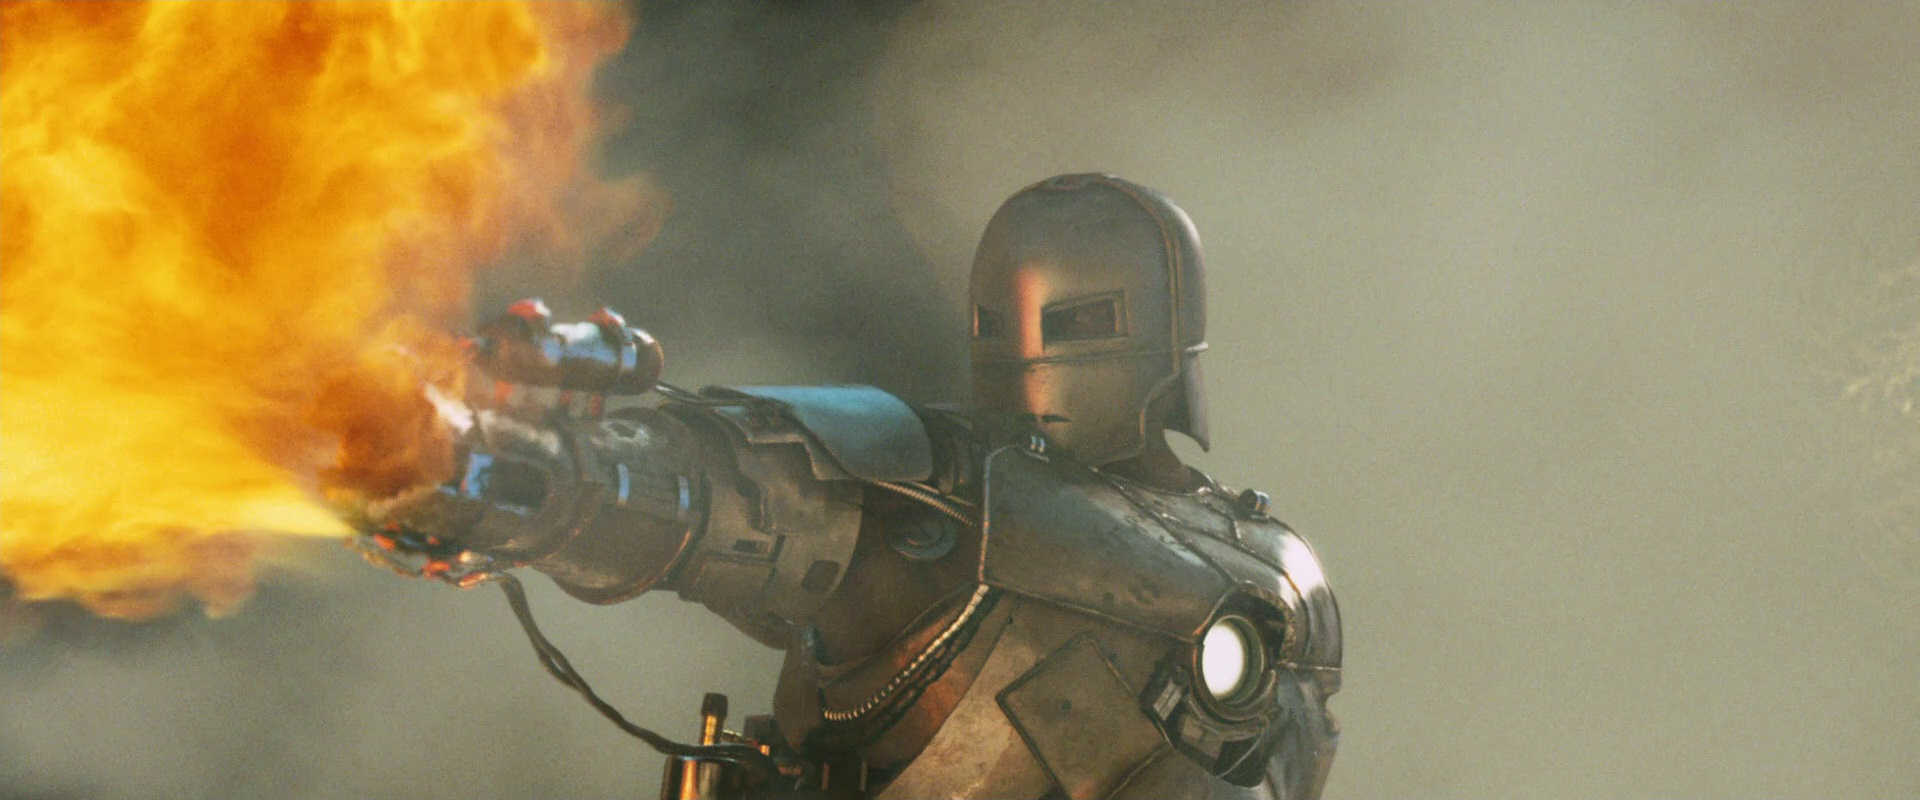 File:Iron Man Mark I Flamethrower.jpg